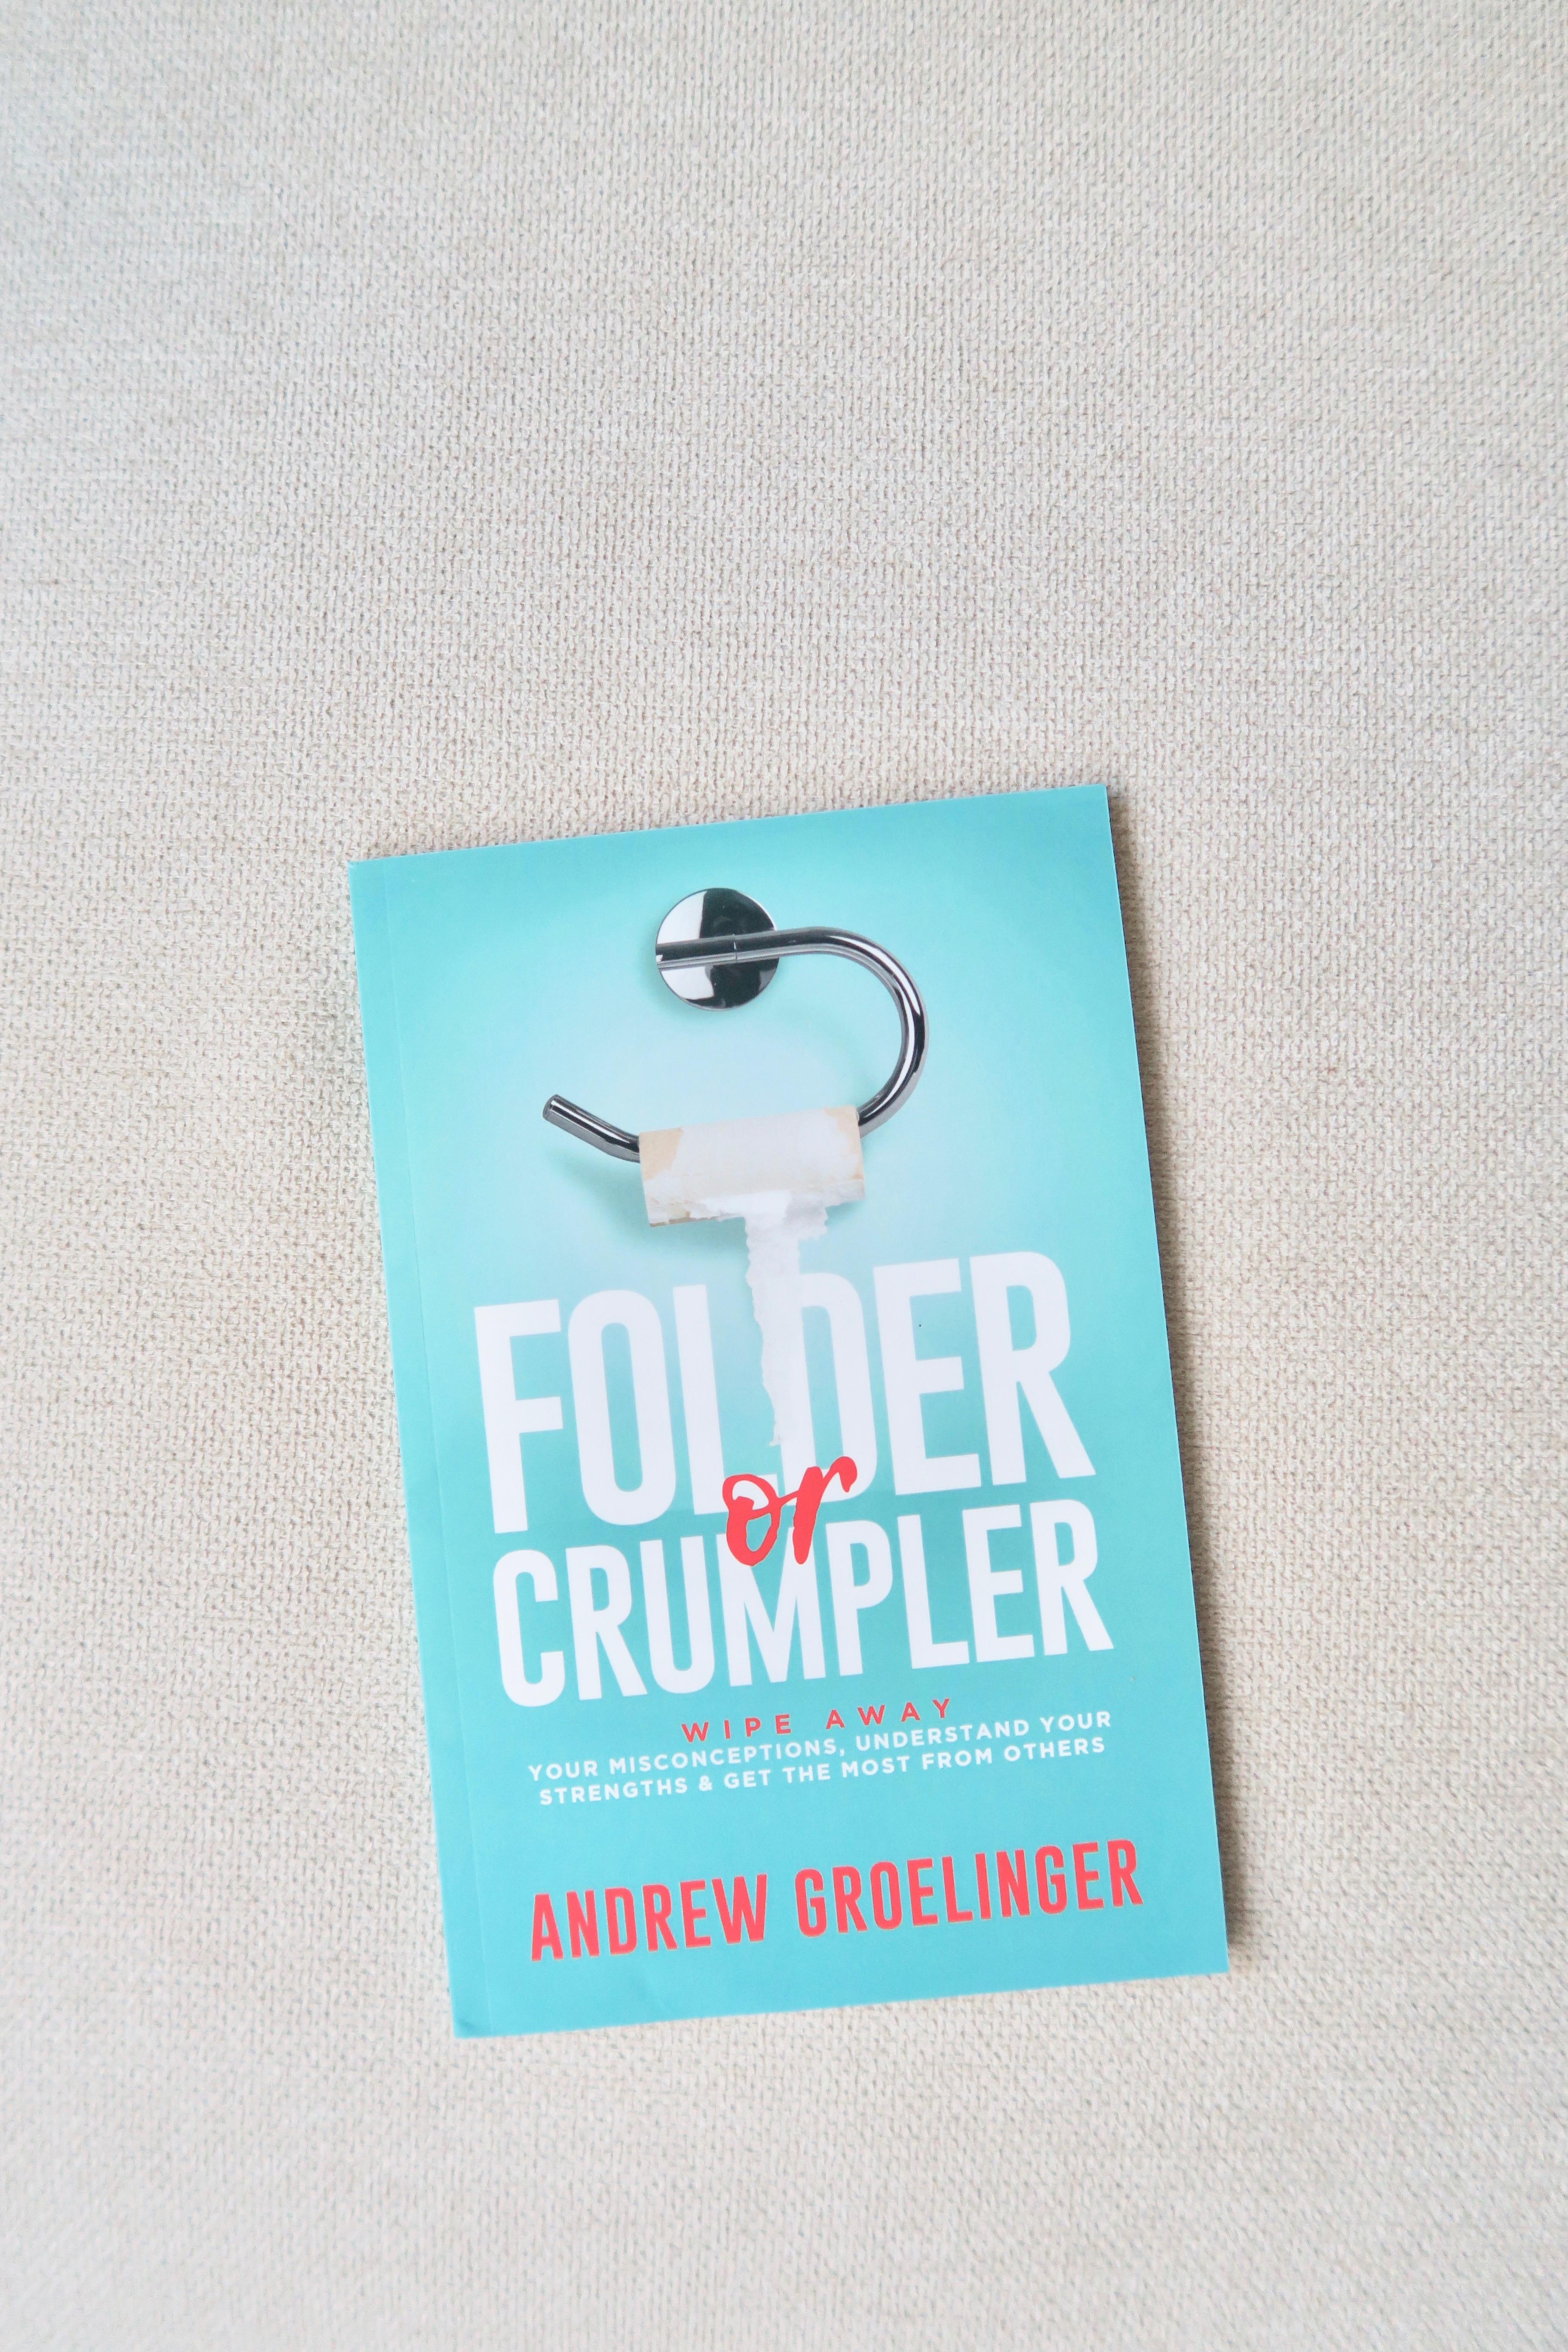 Folder or Crumpler: Wipe Away Your Misconceptions, Understand Your Strengths & Get the Most From Others by Andrew Groelinger